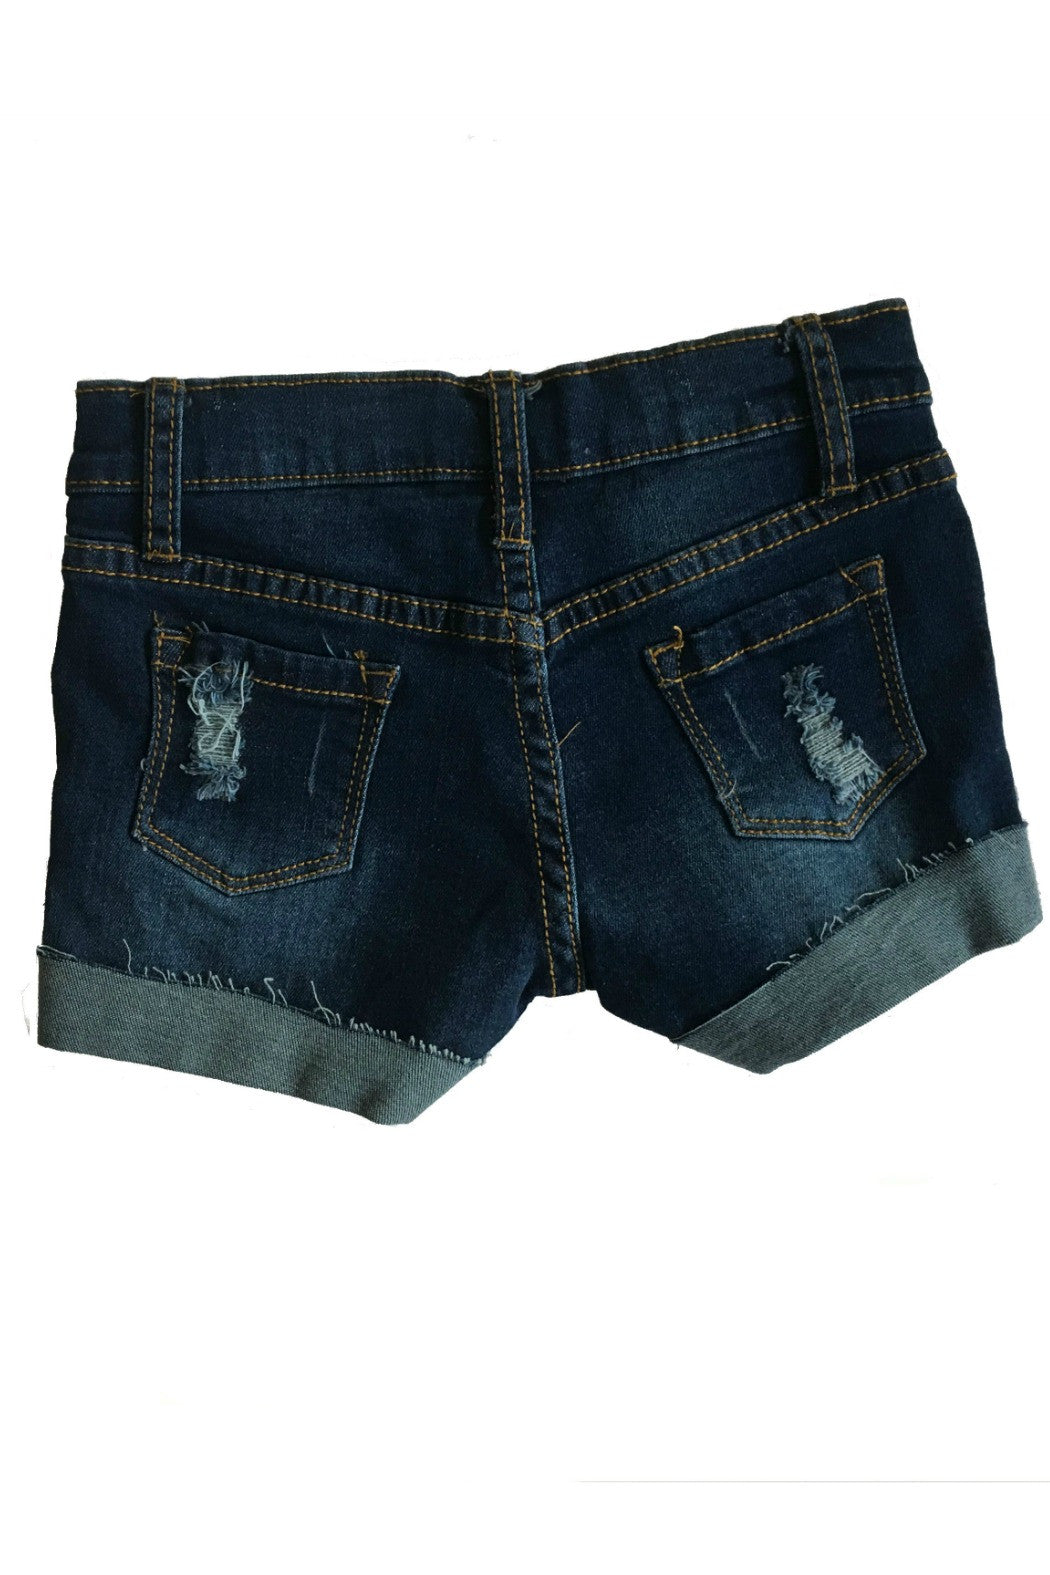 Vintage Havana Kids - Destroyed cuffed shorts - R+D Hipster Emporium | Womens & Mens Clothing - 2